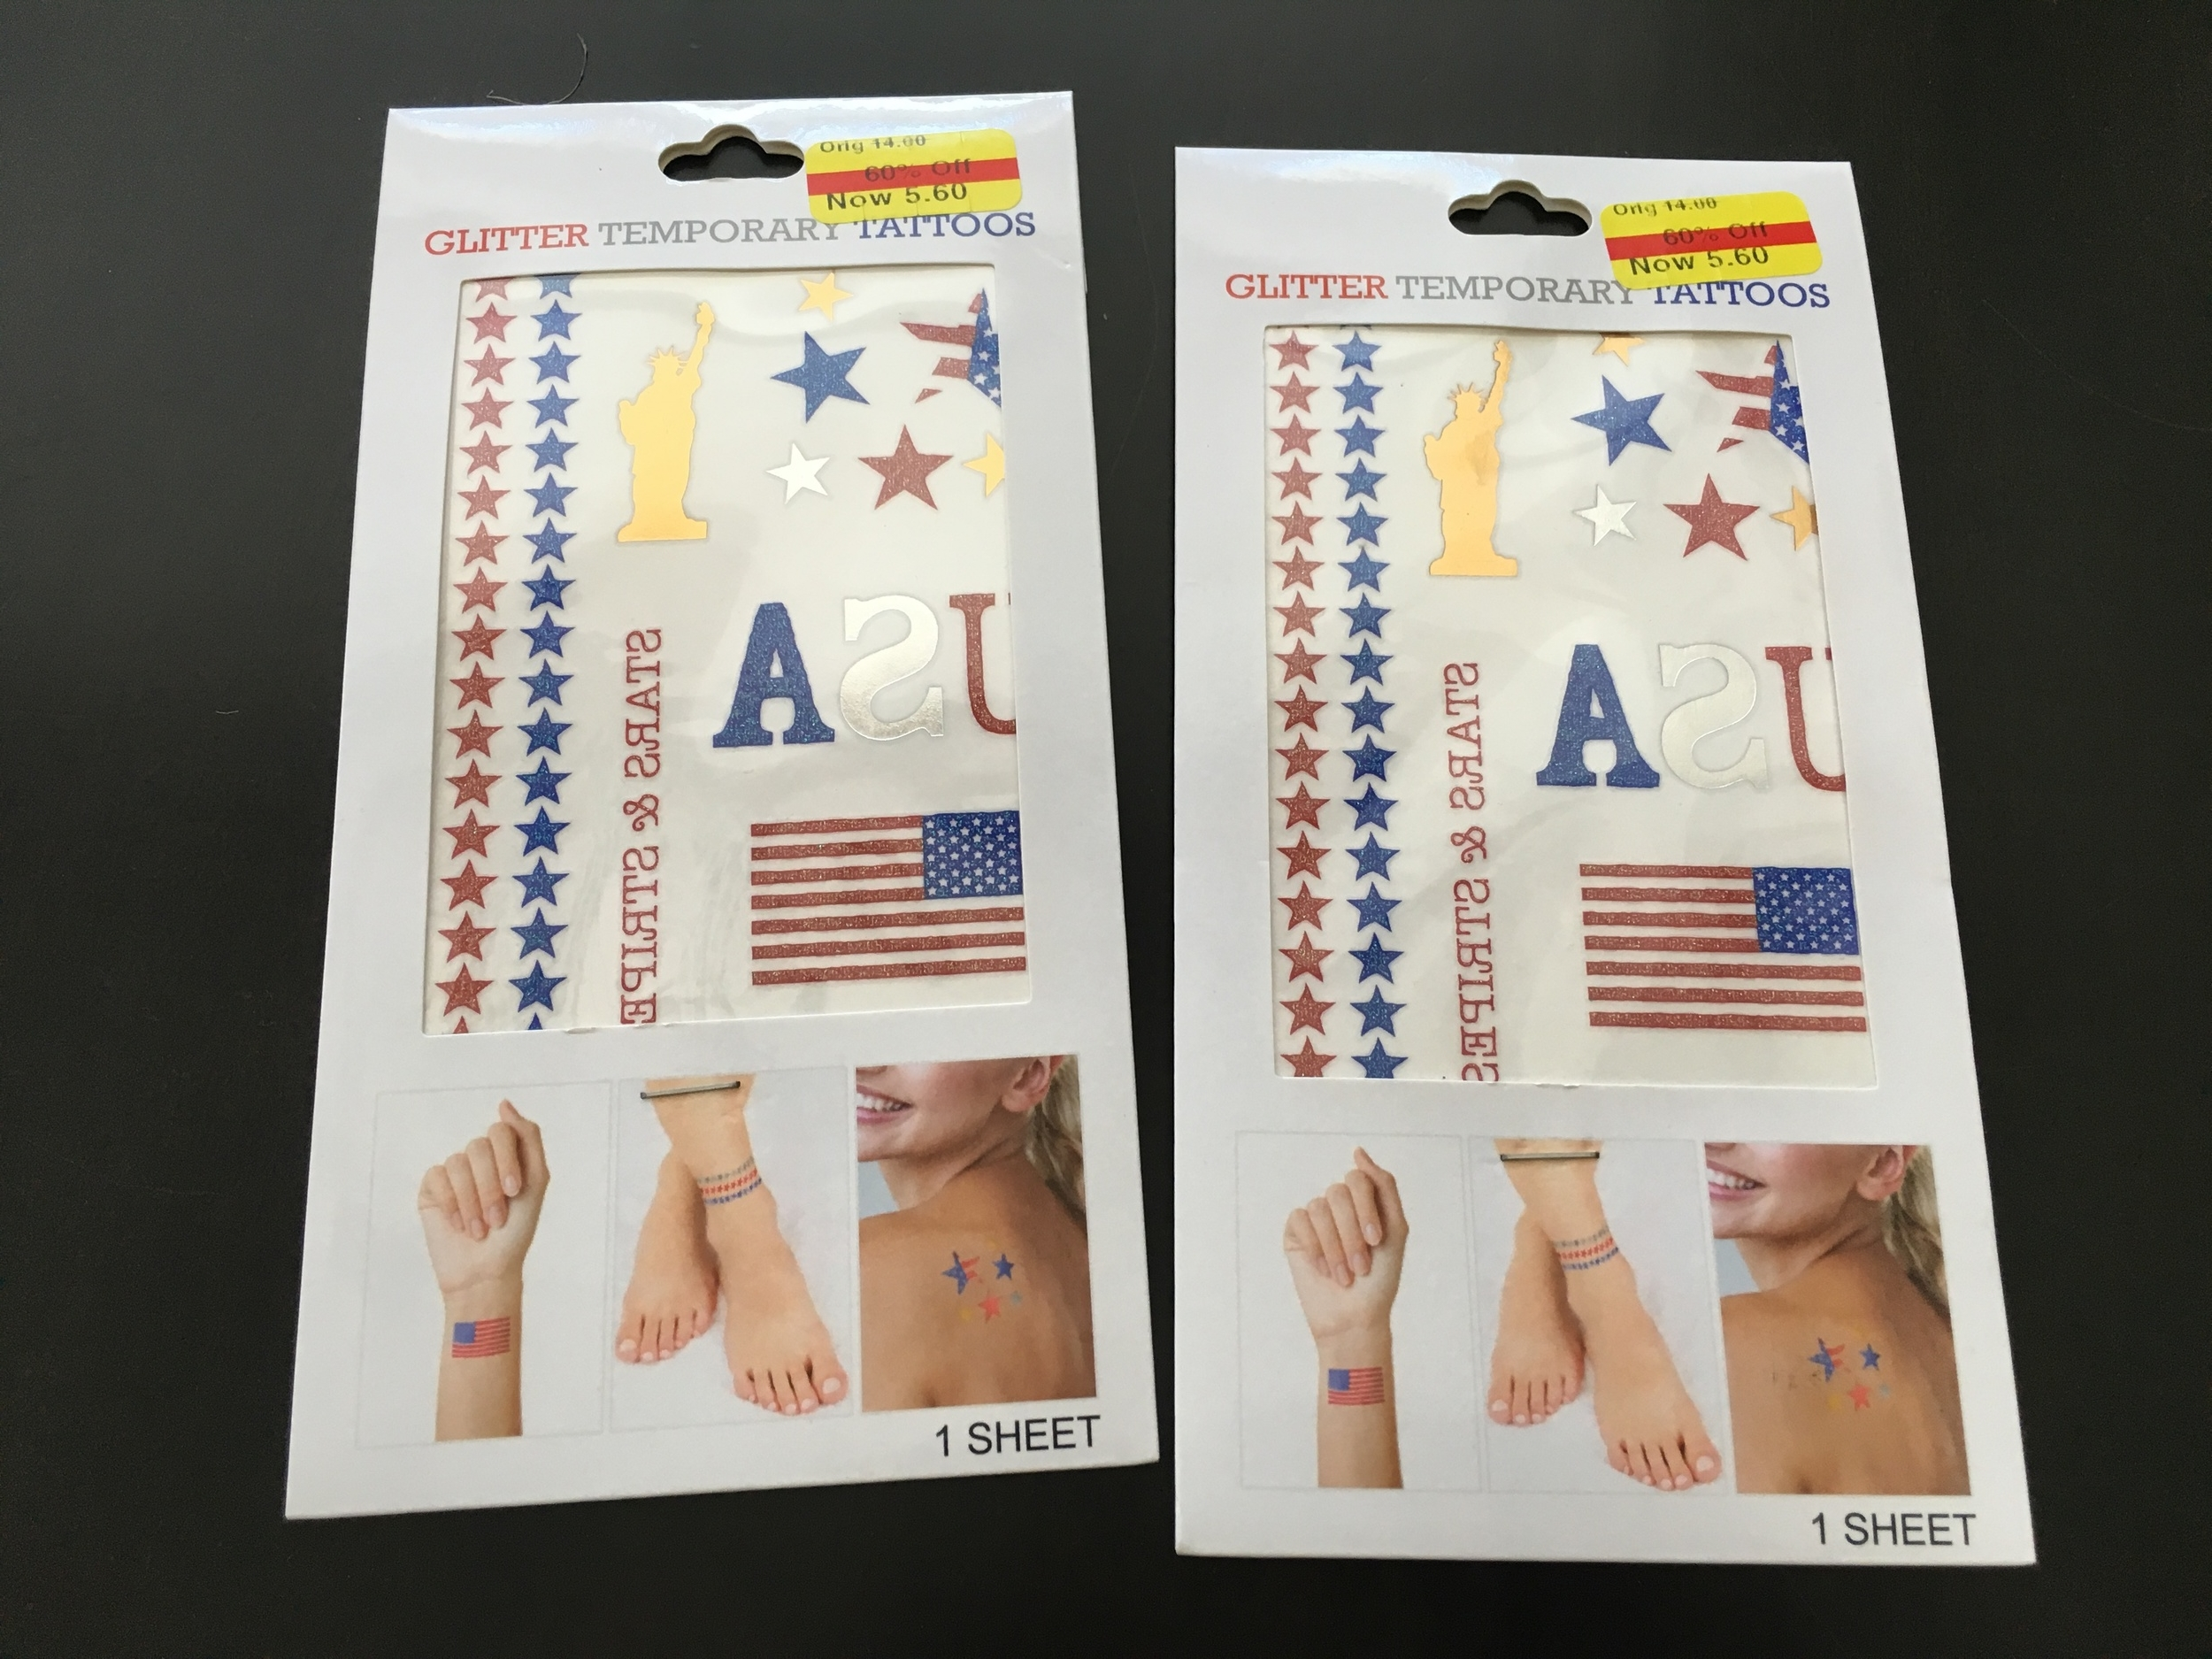 Glittery tats found at Kohl's for even cheaper than $5.60 each because there was a sale on top of the already discounted items. Score!